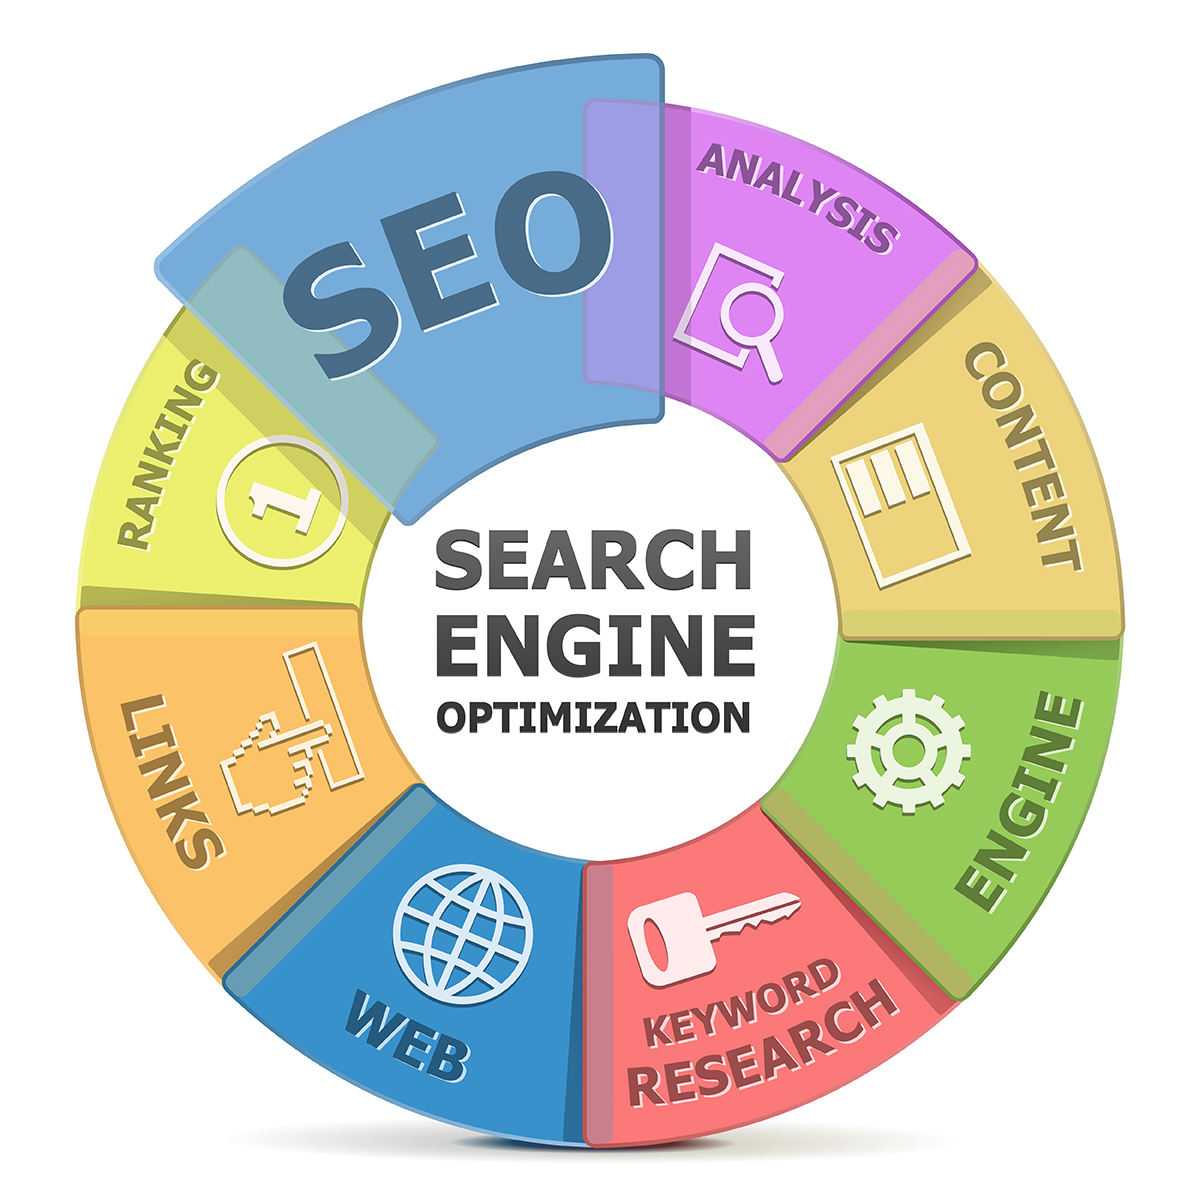 SEO Services - Search Engine Optimization Services, Custom Web Design Company In India.